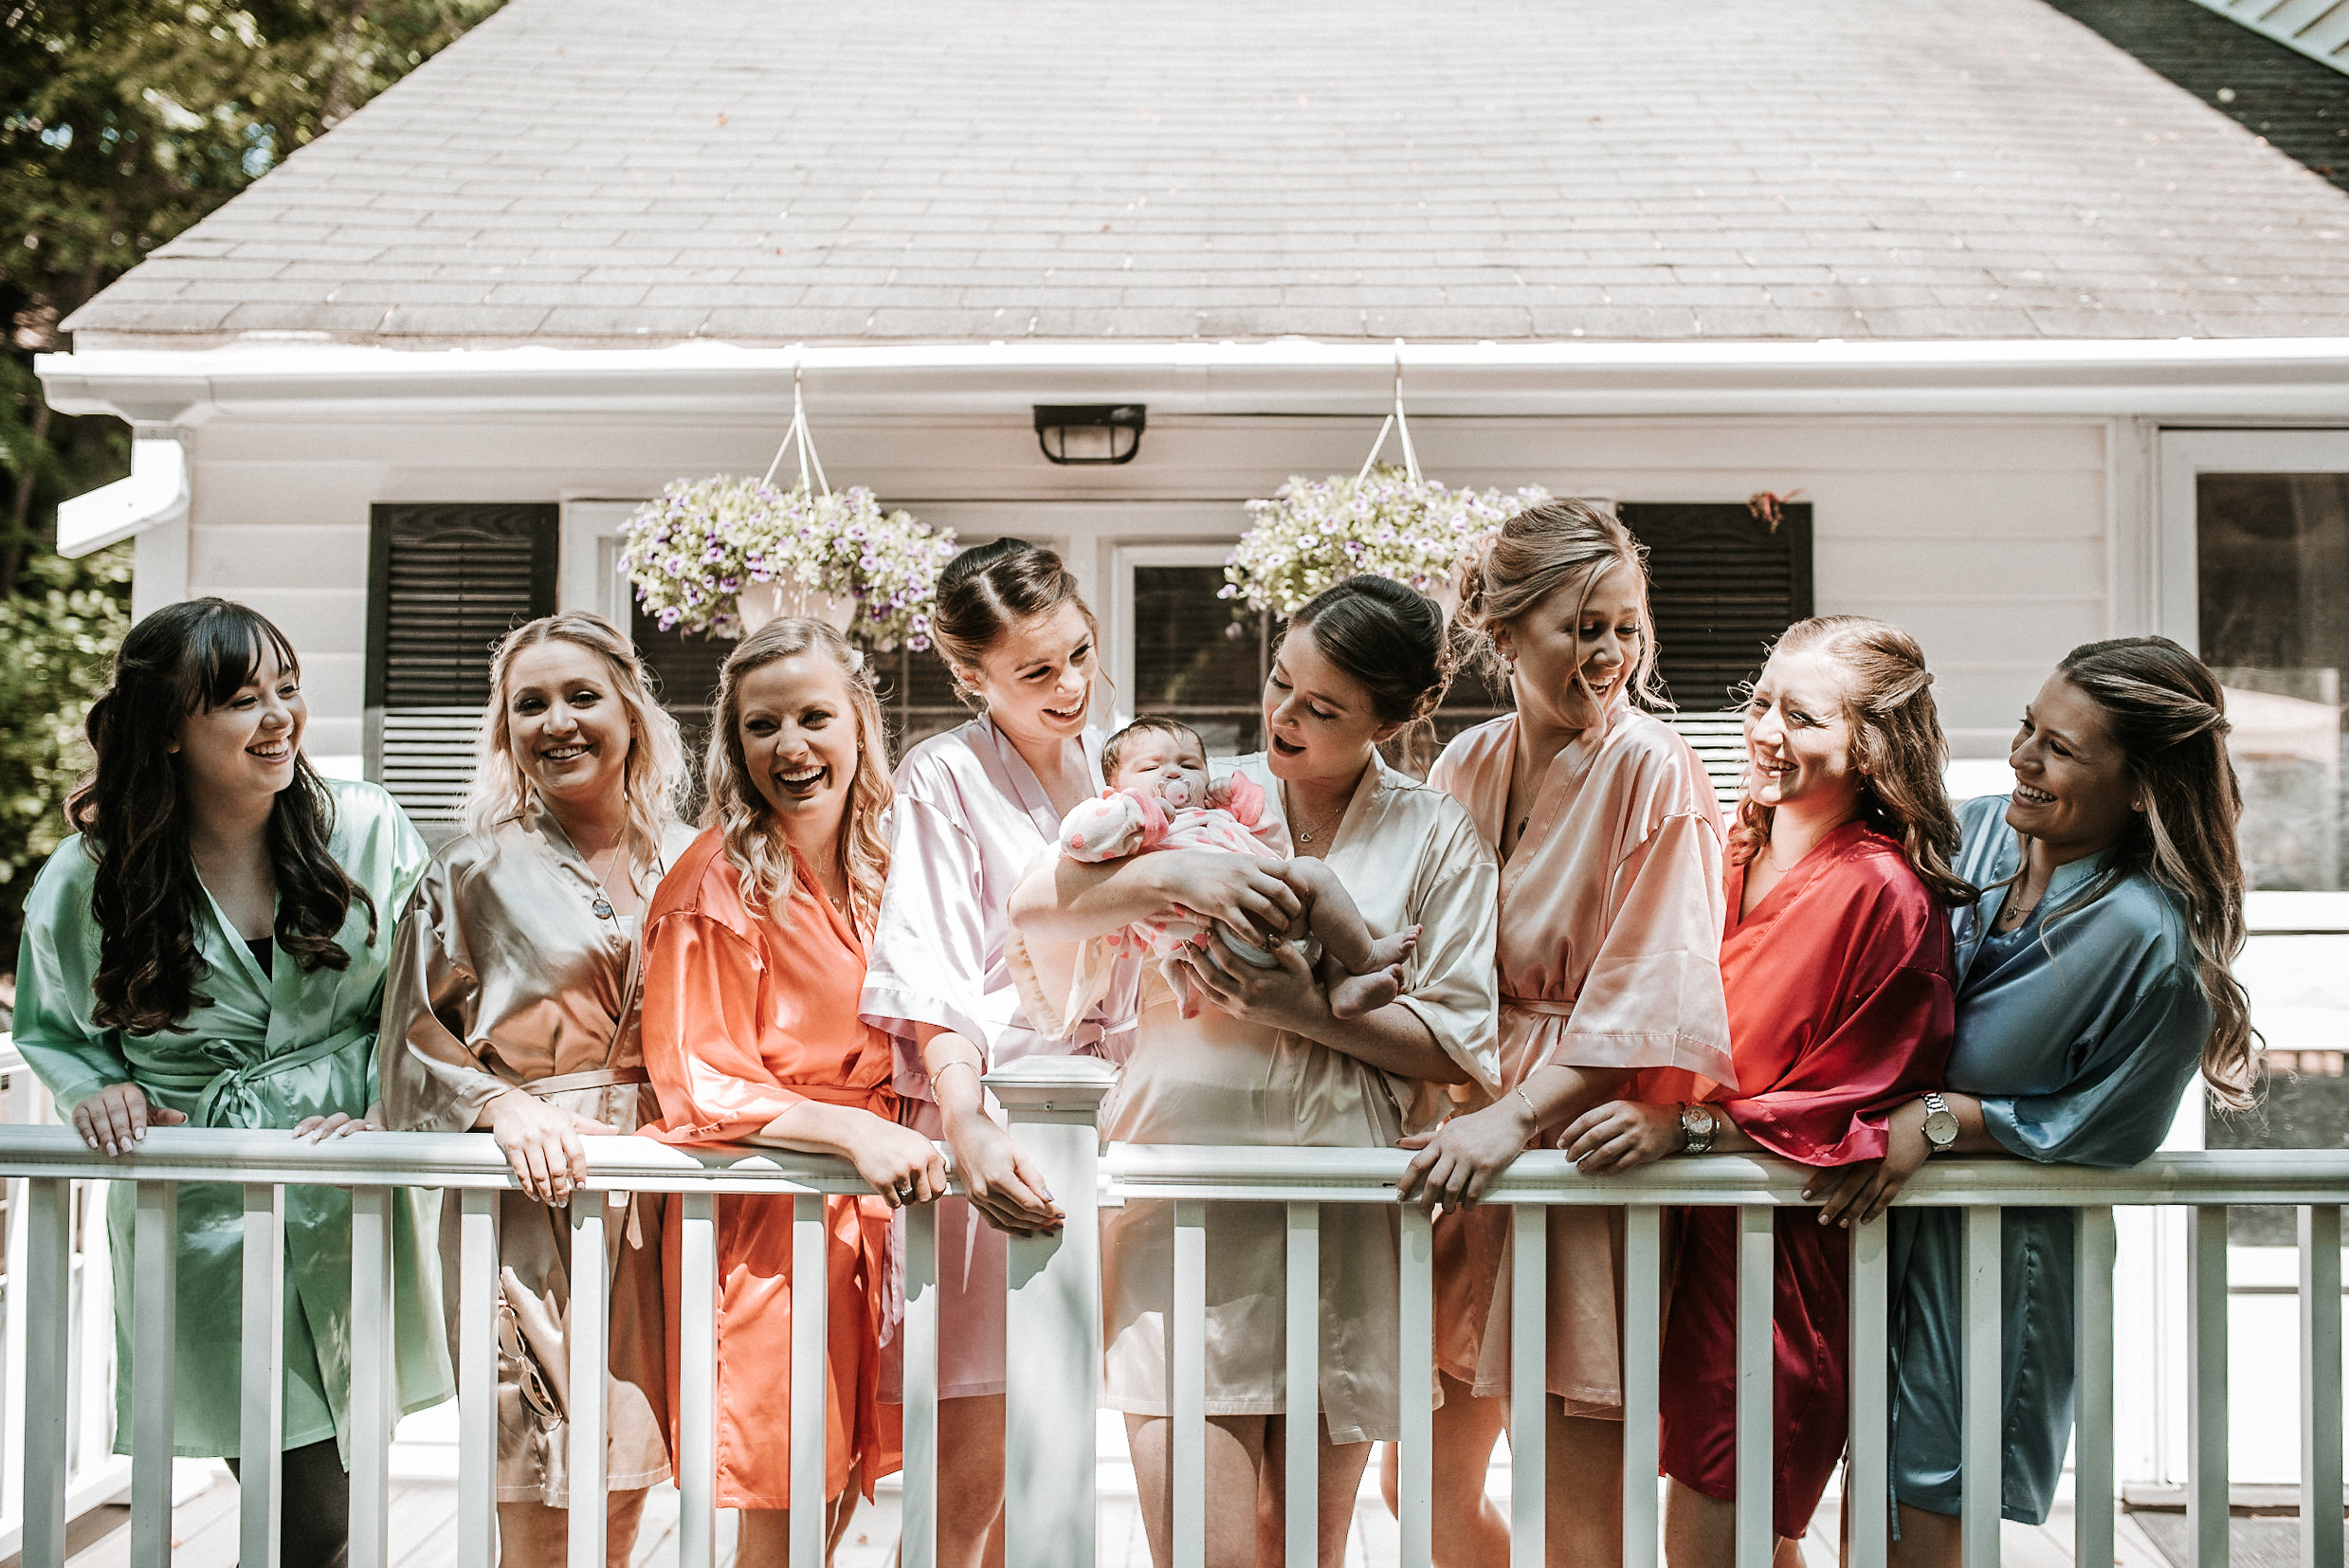 Bride holding baby surrounded by bridesmaids